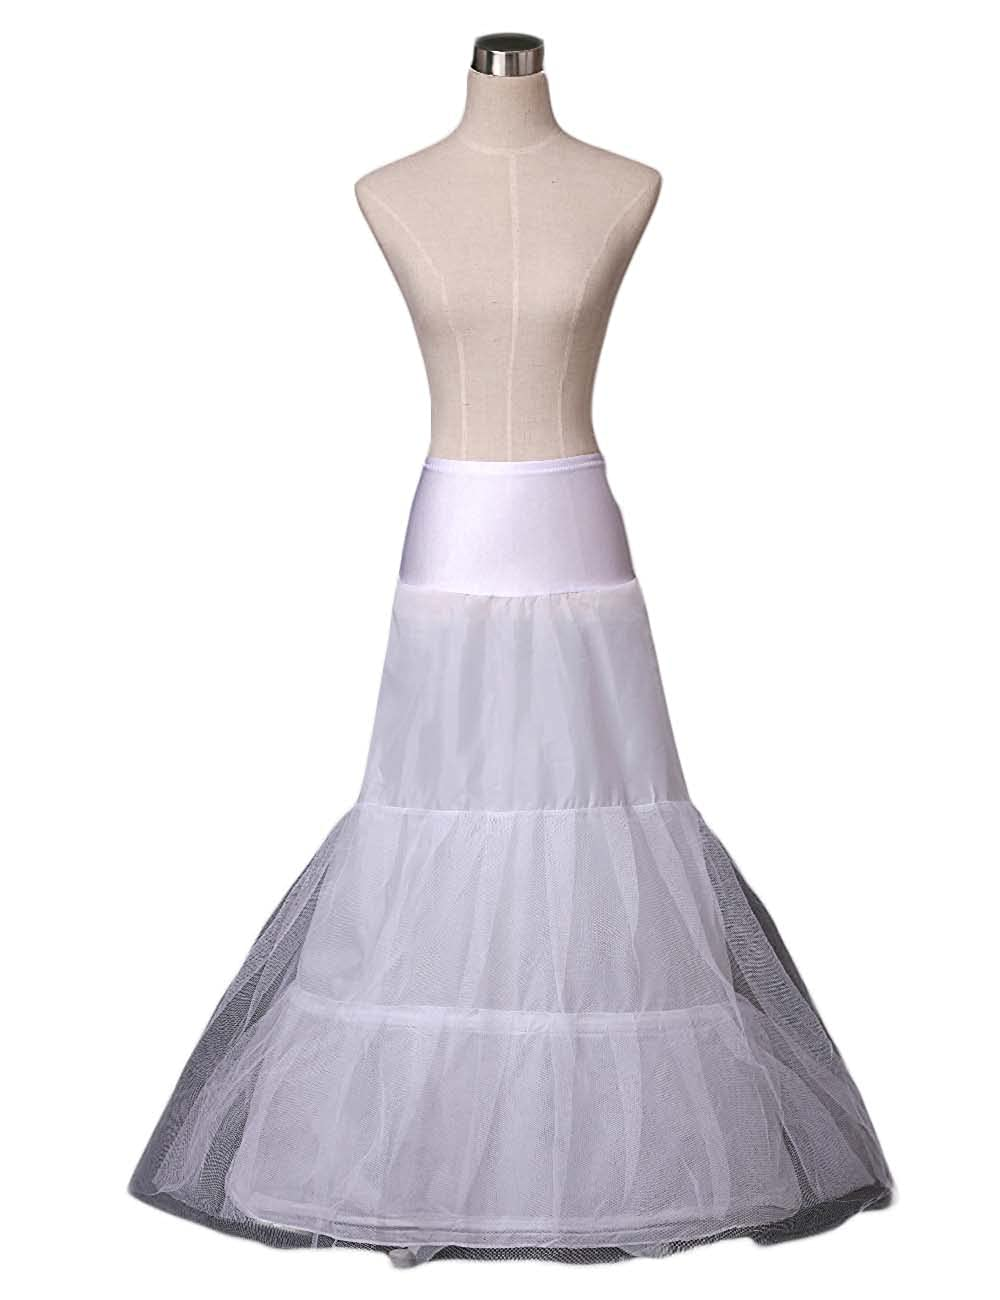 Women's 2 Hoops A-line Wedding Petticoat/Underskirt/Crinoline/Slips Bridal Dress 9028